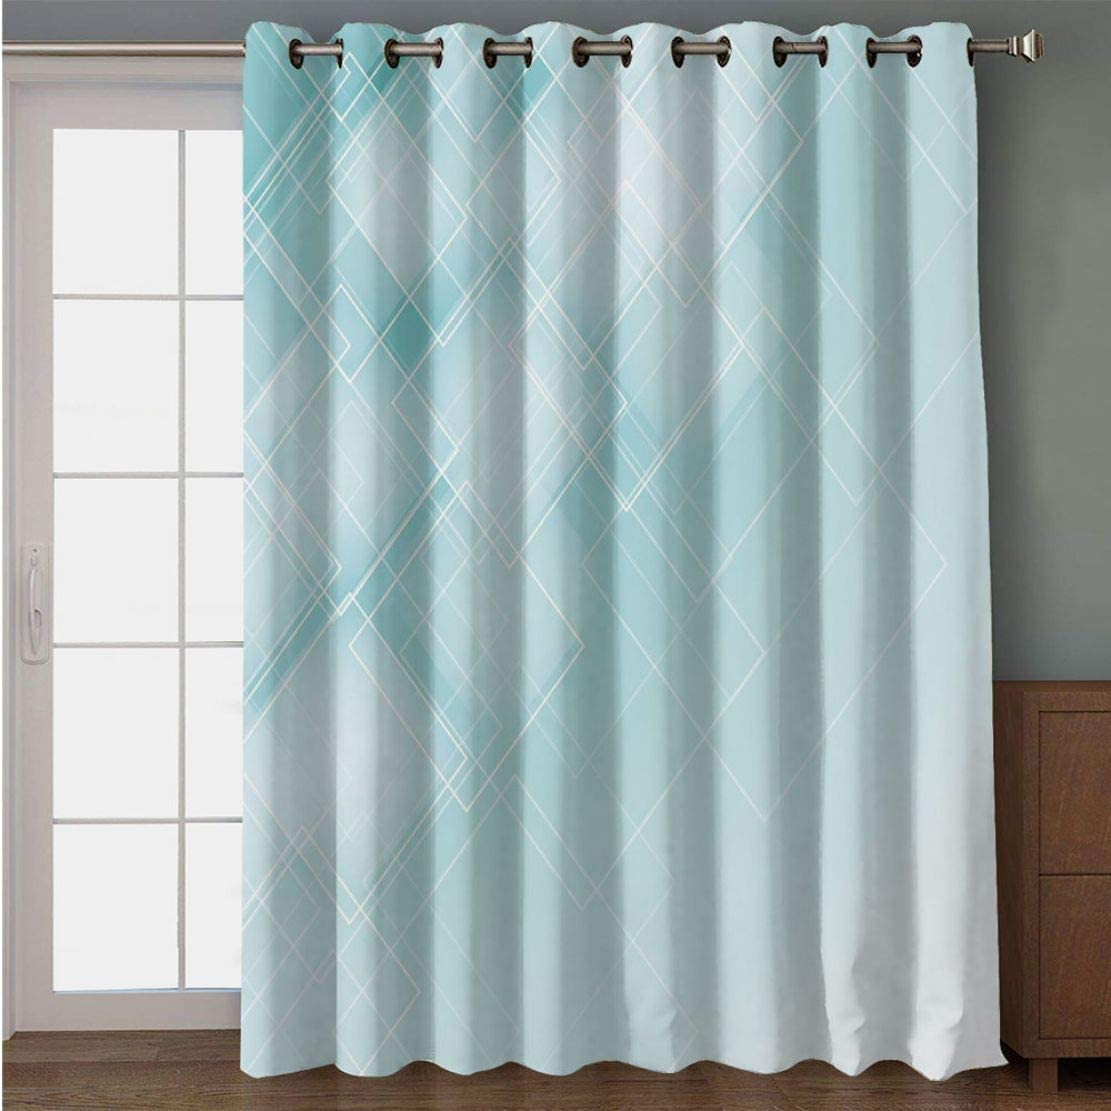 Joy2016 Blackout Curtains for Patio Sliding Door, Extra Wide Draperies for Double Window, Thermal Insulated Energy Efficiency Blackout Curtains for Bedroom Decor, 108 Inch Wide x 108 Inch Length